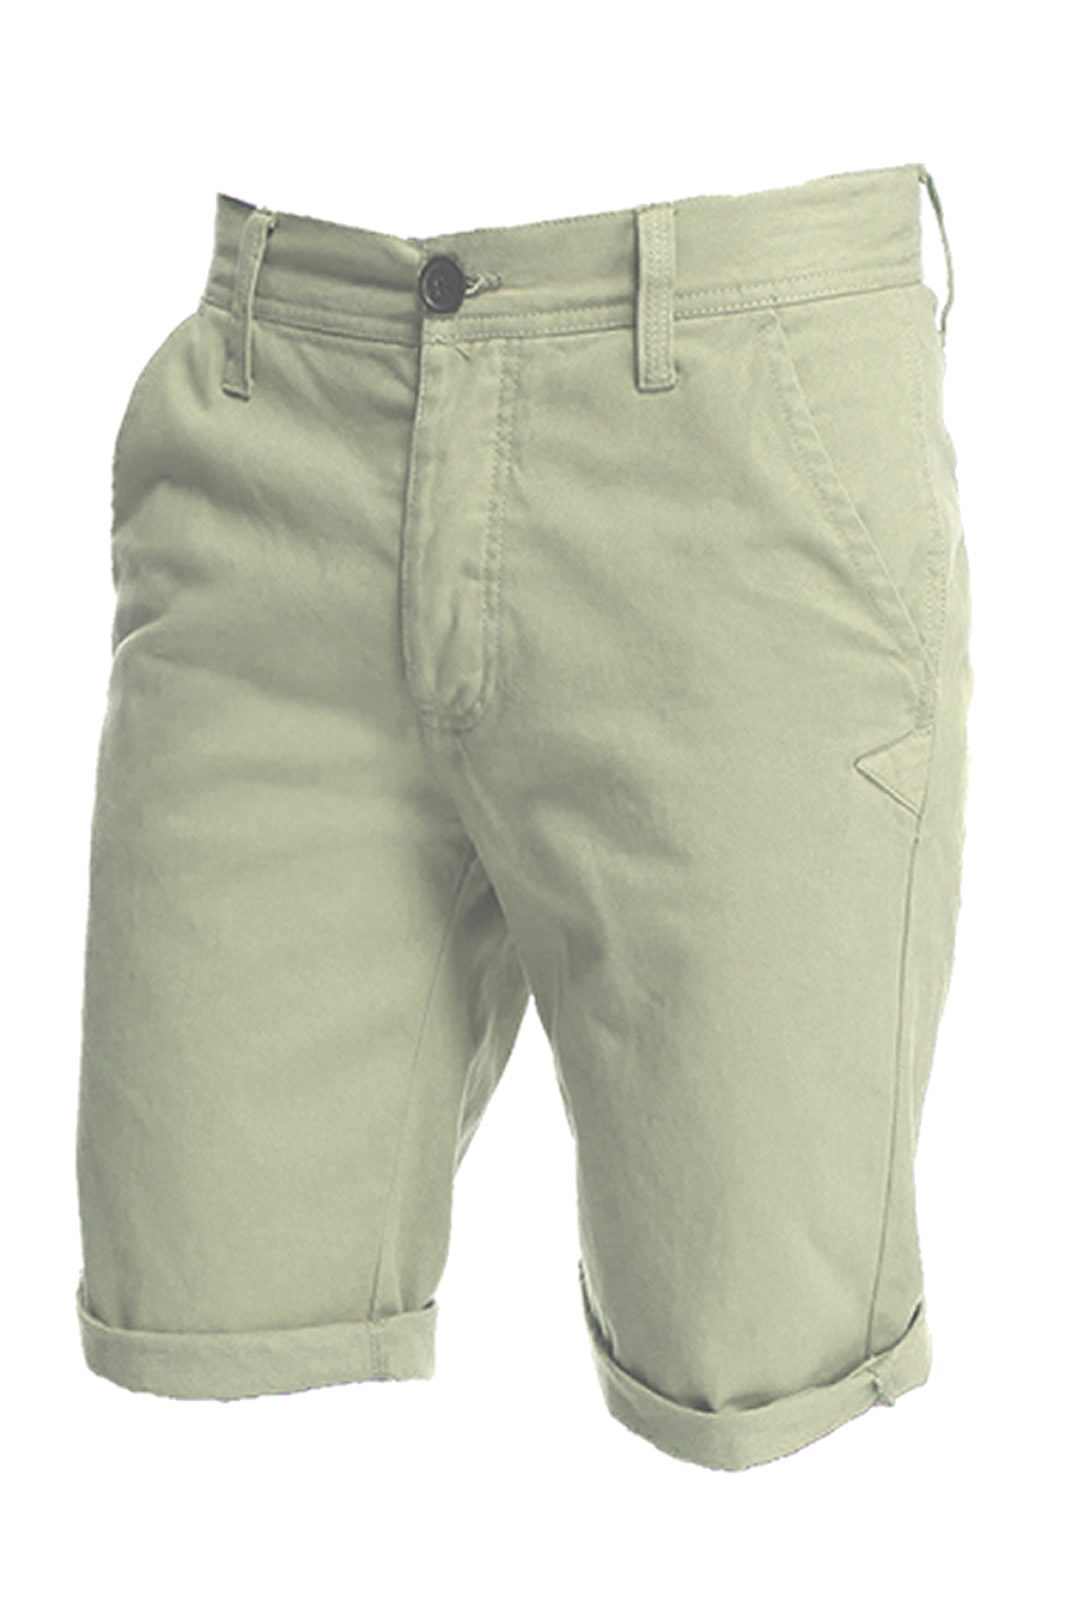 Bermuda shorts,capri, mens cargo shorts,best quality shorts for peopl and our prices are really less from market and we guarantee you will not find better prices from us skating skaters hip short,womens bermuda shorts,ladies bermuda,cheap cargo shorts,l.